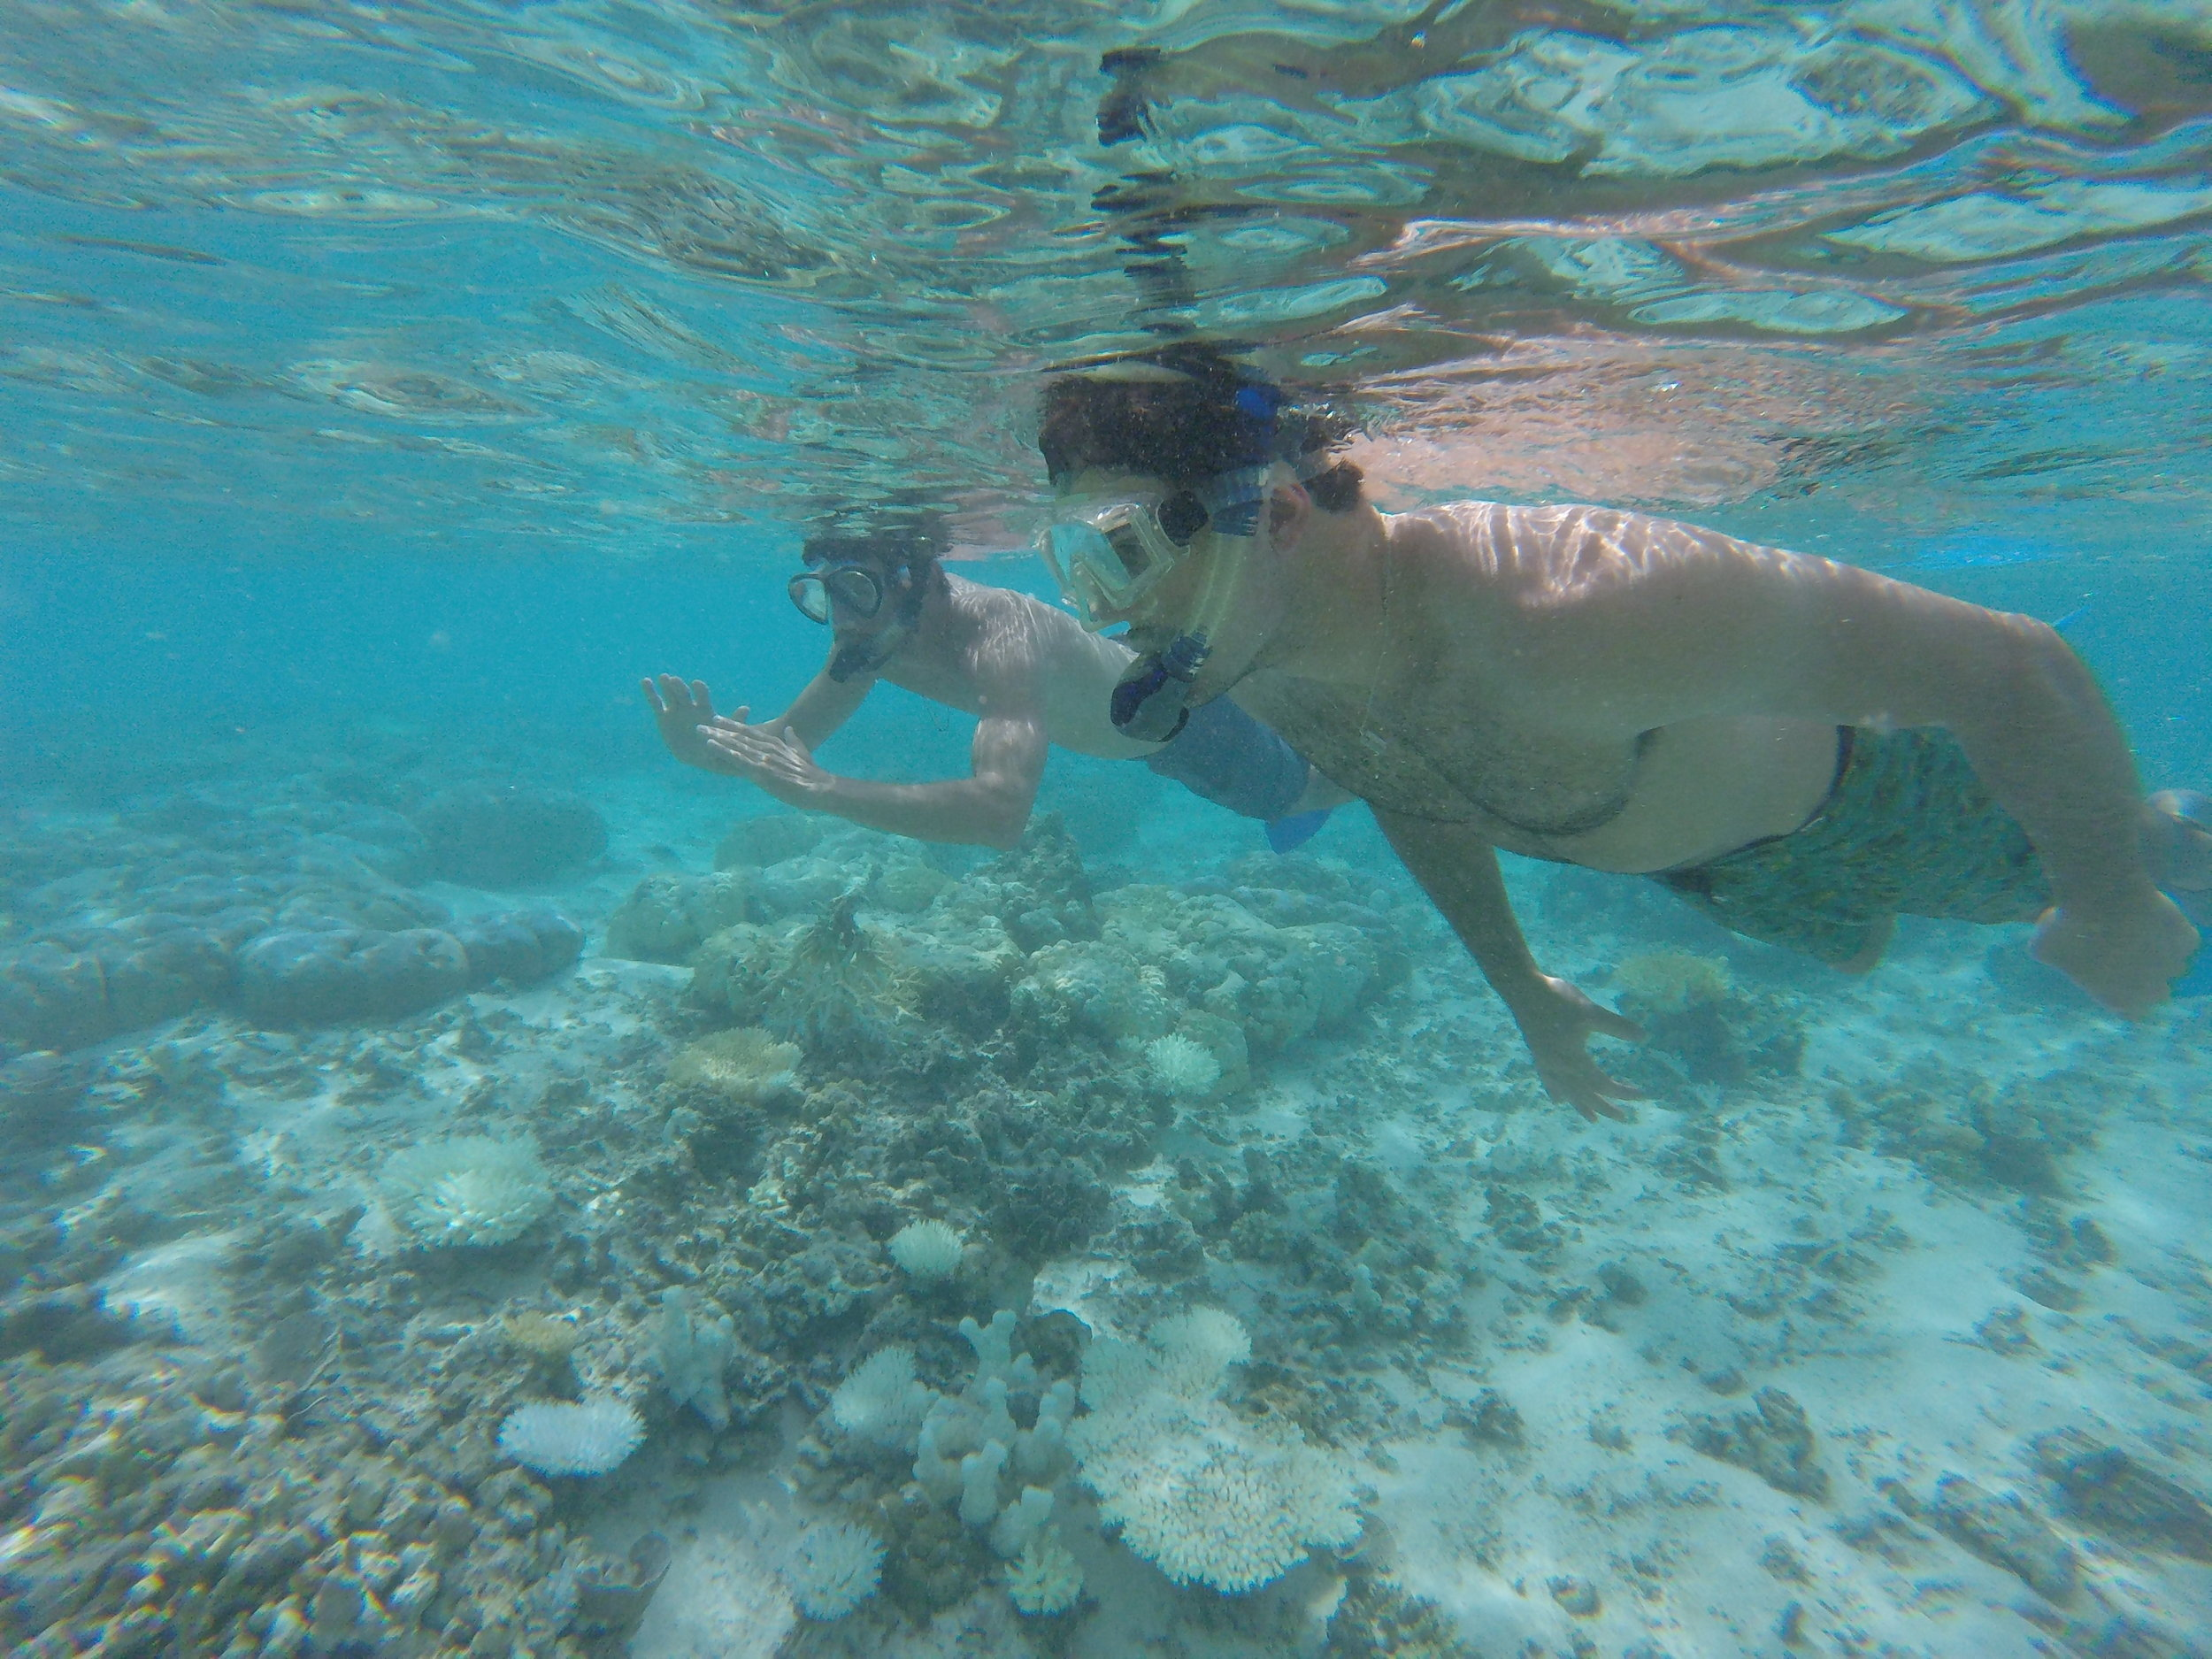 We took a boat to a few snorkeling spots, it's shallow enough to snorkel and not have to worry about paying for a full SCUBA dive